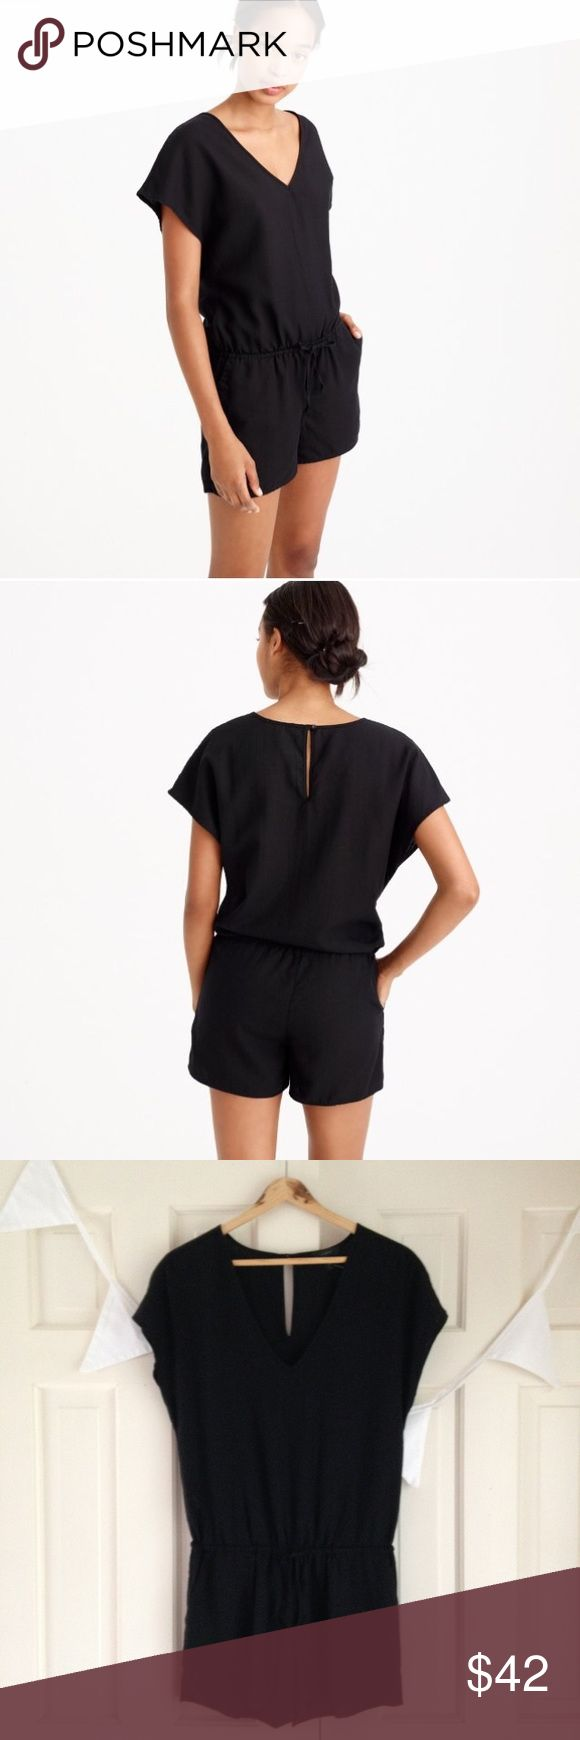 """J CREW Drapey V-Neck Romper NWOT New! But retail tag has fallen off. Because it is slightly oversized, it probably could fit an XS too. From J Crew: """"Made from a super soft, drapey linen blend, this romper is the chic way to get dressed in under 60 seconds, so you can spend more time at the beach instead of wondering what to wear."""" J. Crew Pants Jumpsuits & Rompers"""